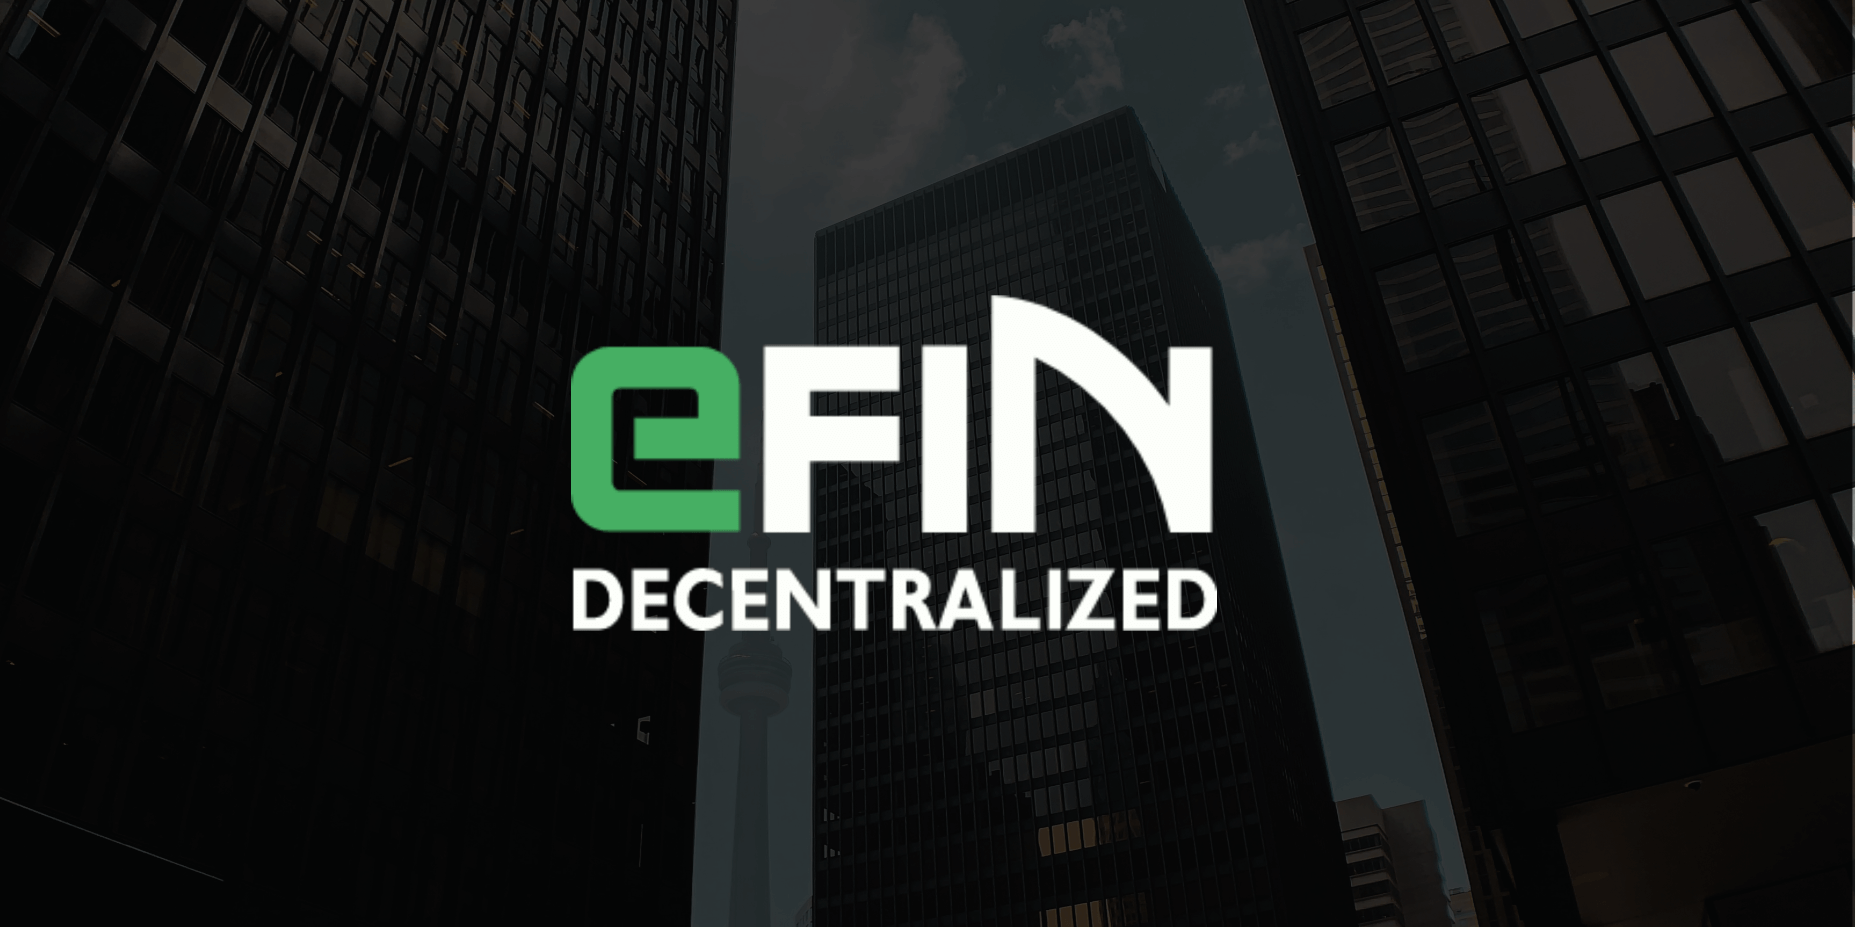 eFIN: The Next-Era Blockchain-Based Decentralized Platform